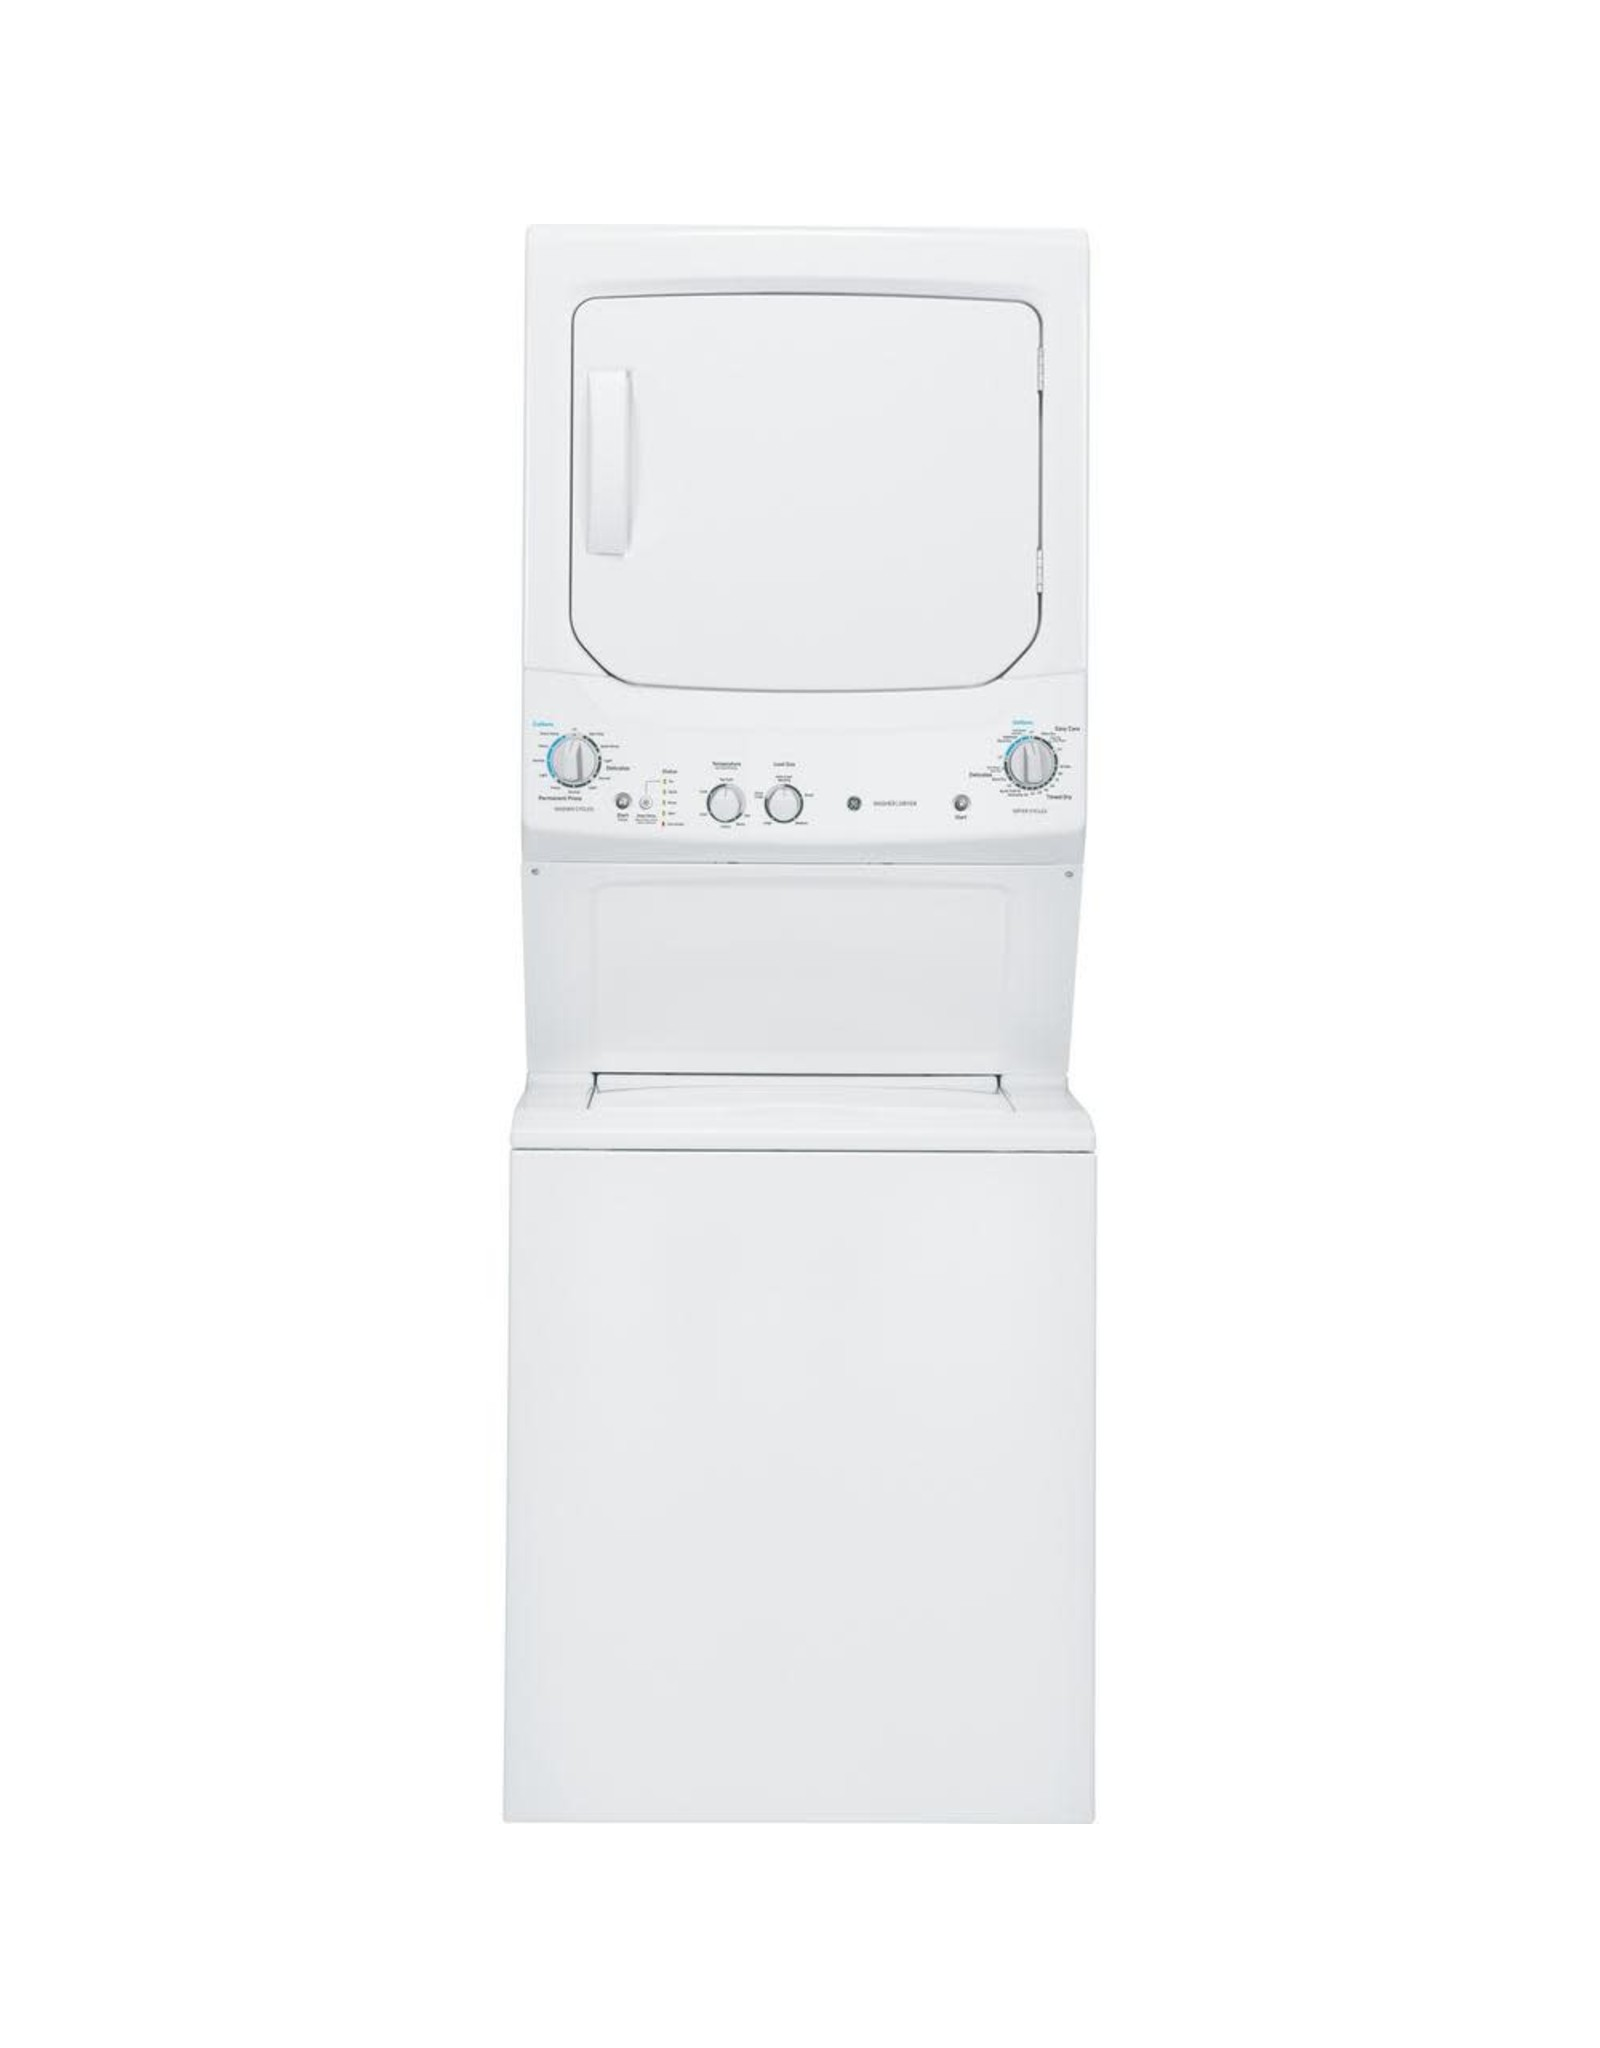 GE GUD27ESSMWW GE White Laundry Center 3.8 cu. ft. Washer and 5.9 cu. ft. 240-Volt Vented Electric Dryer